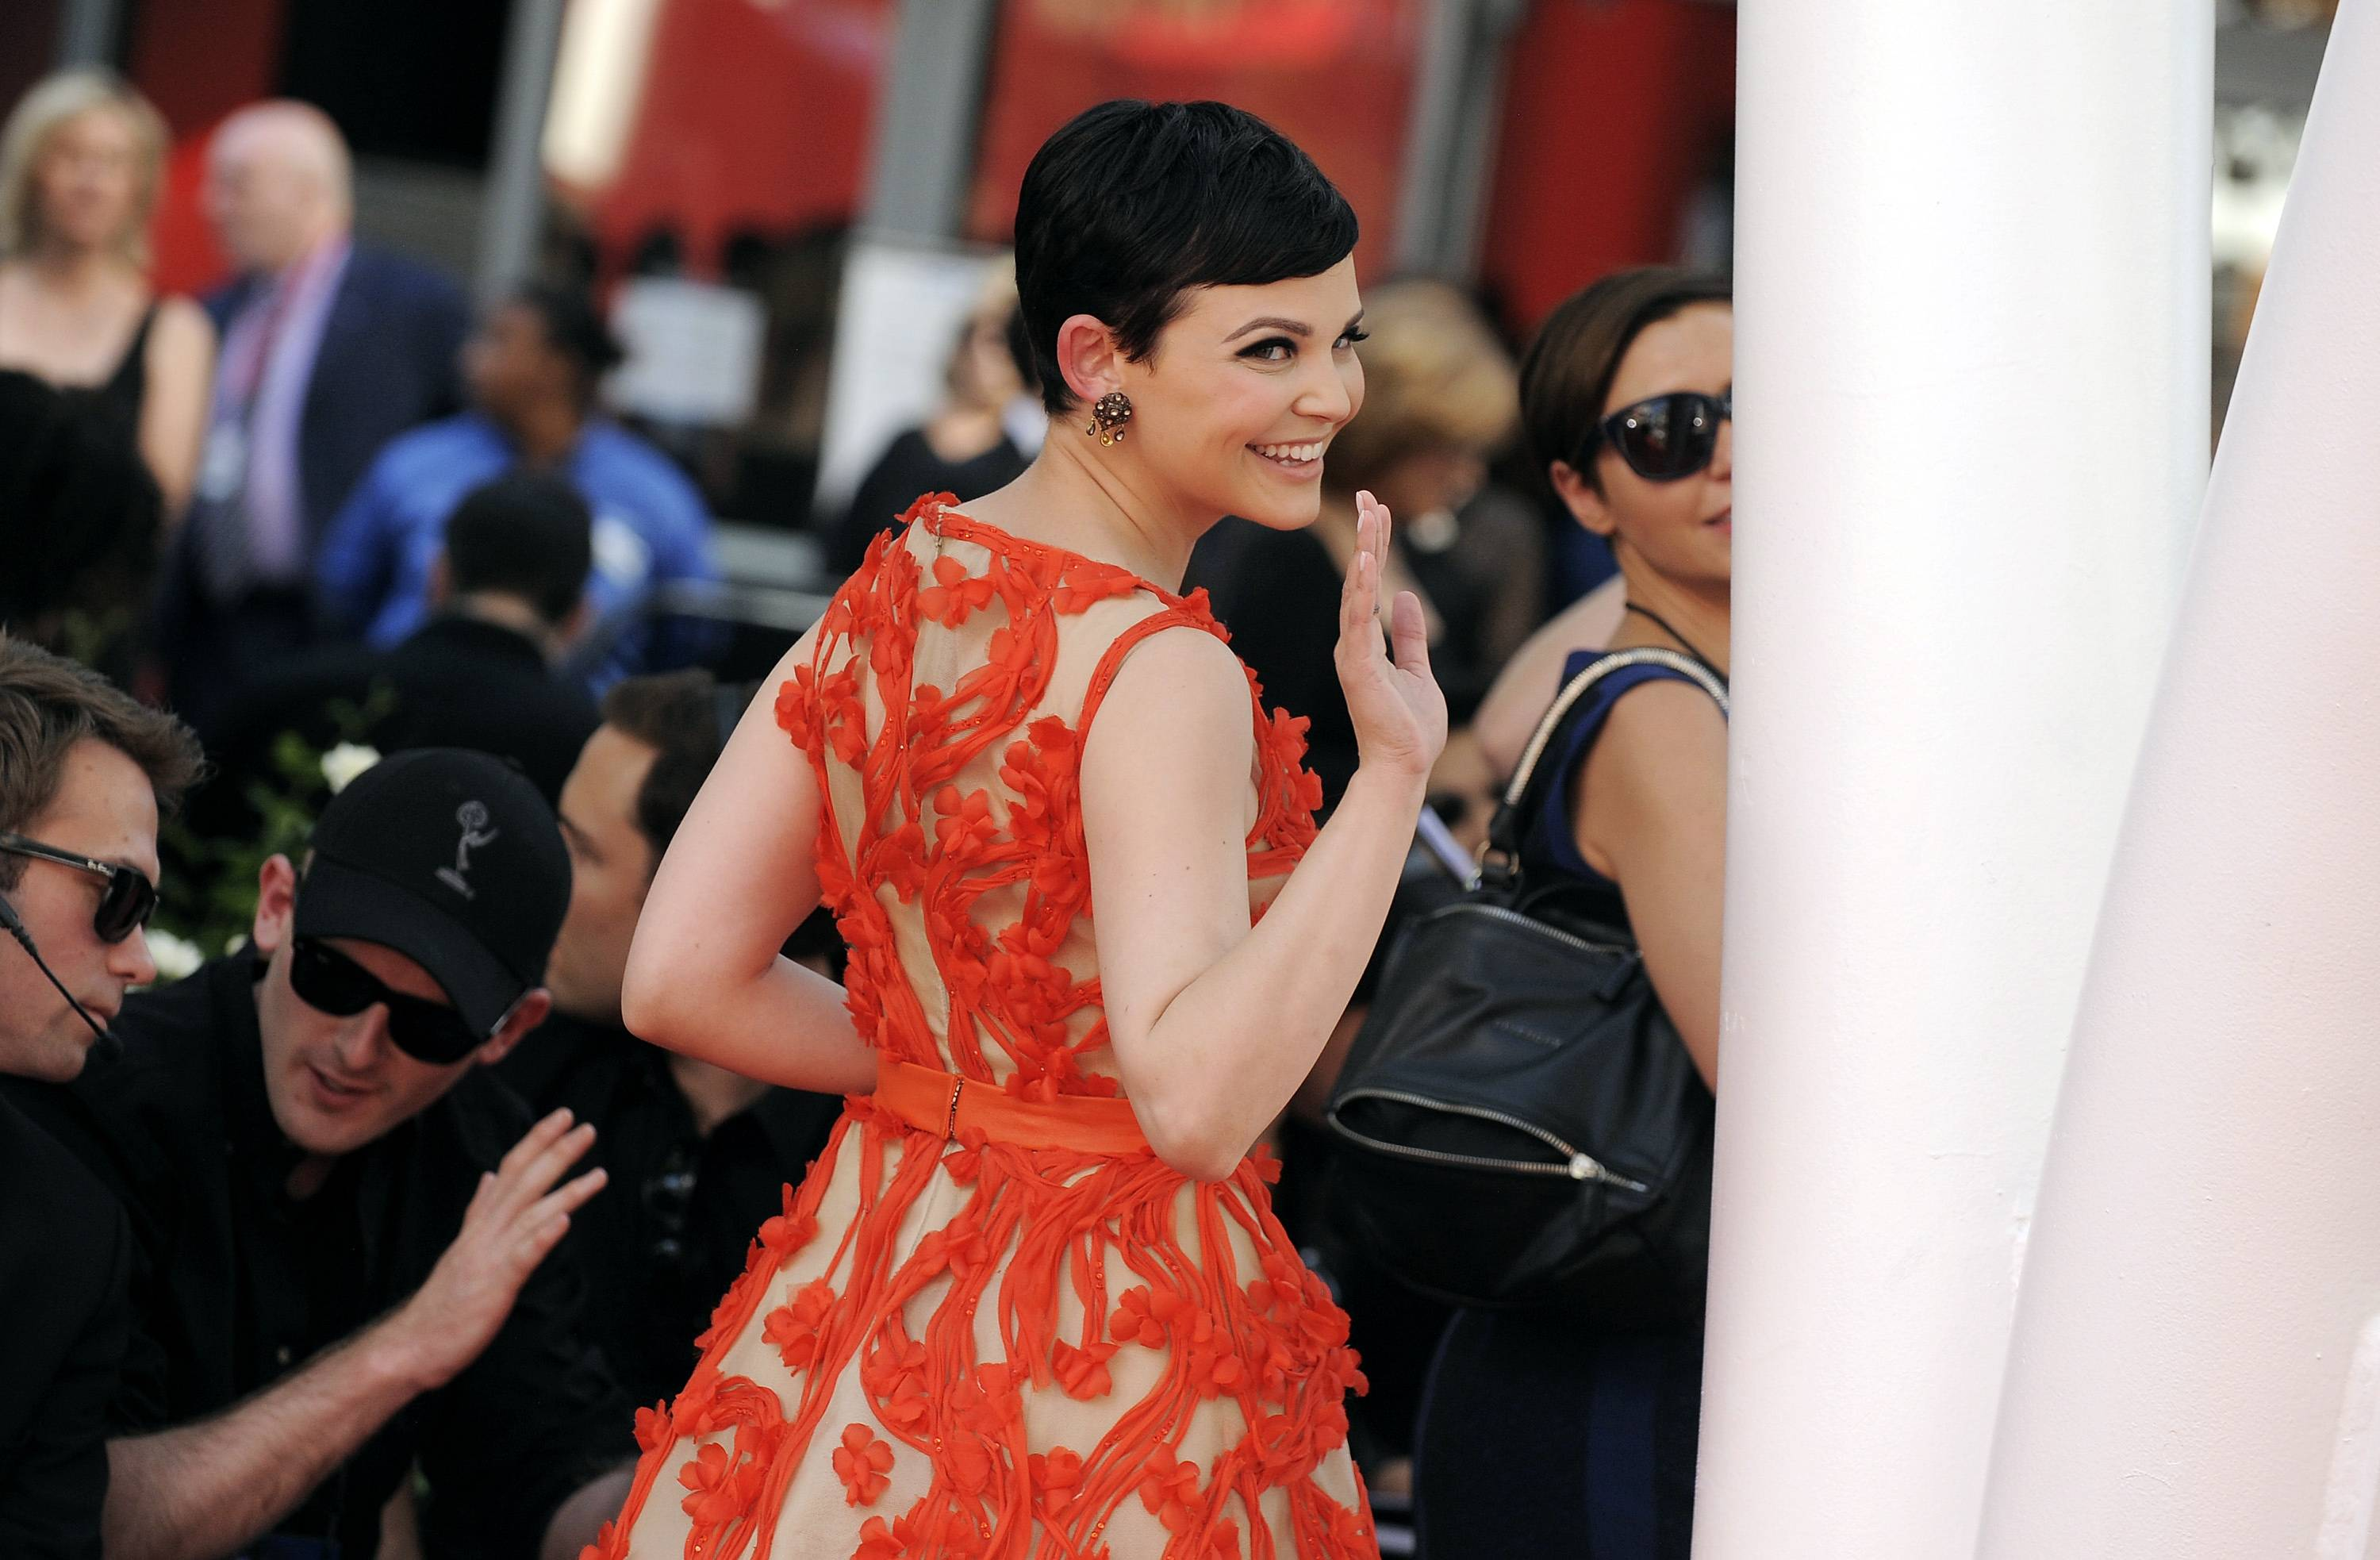 """Once Upon a Time"" actress Ginnifer Goodwin waves to fans before heading into the Emmy Awards."